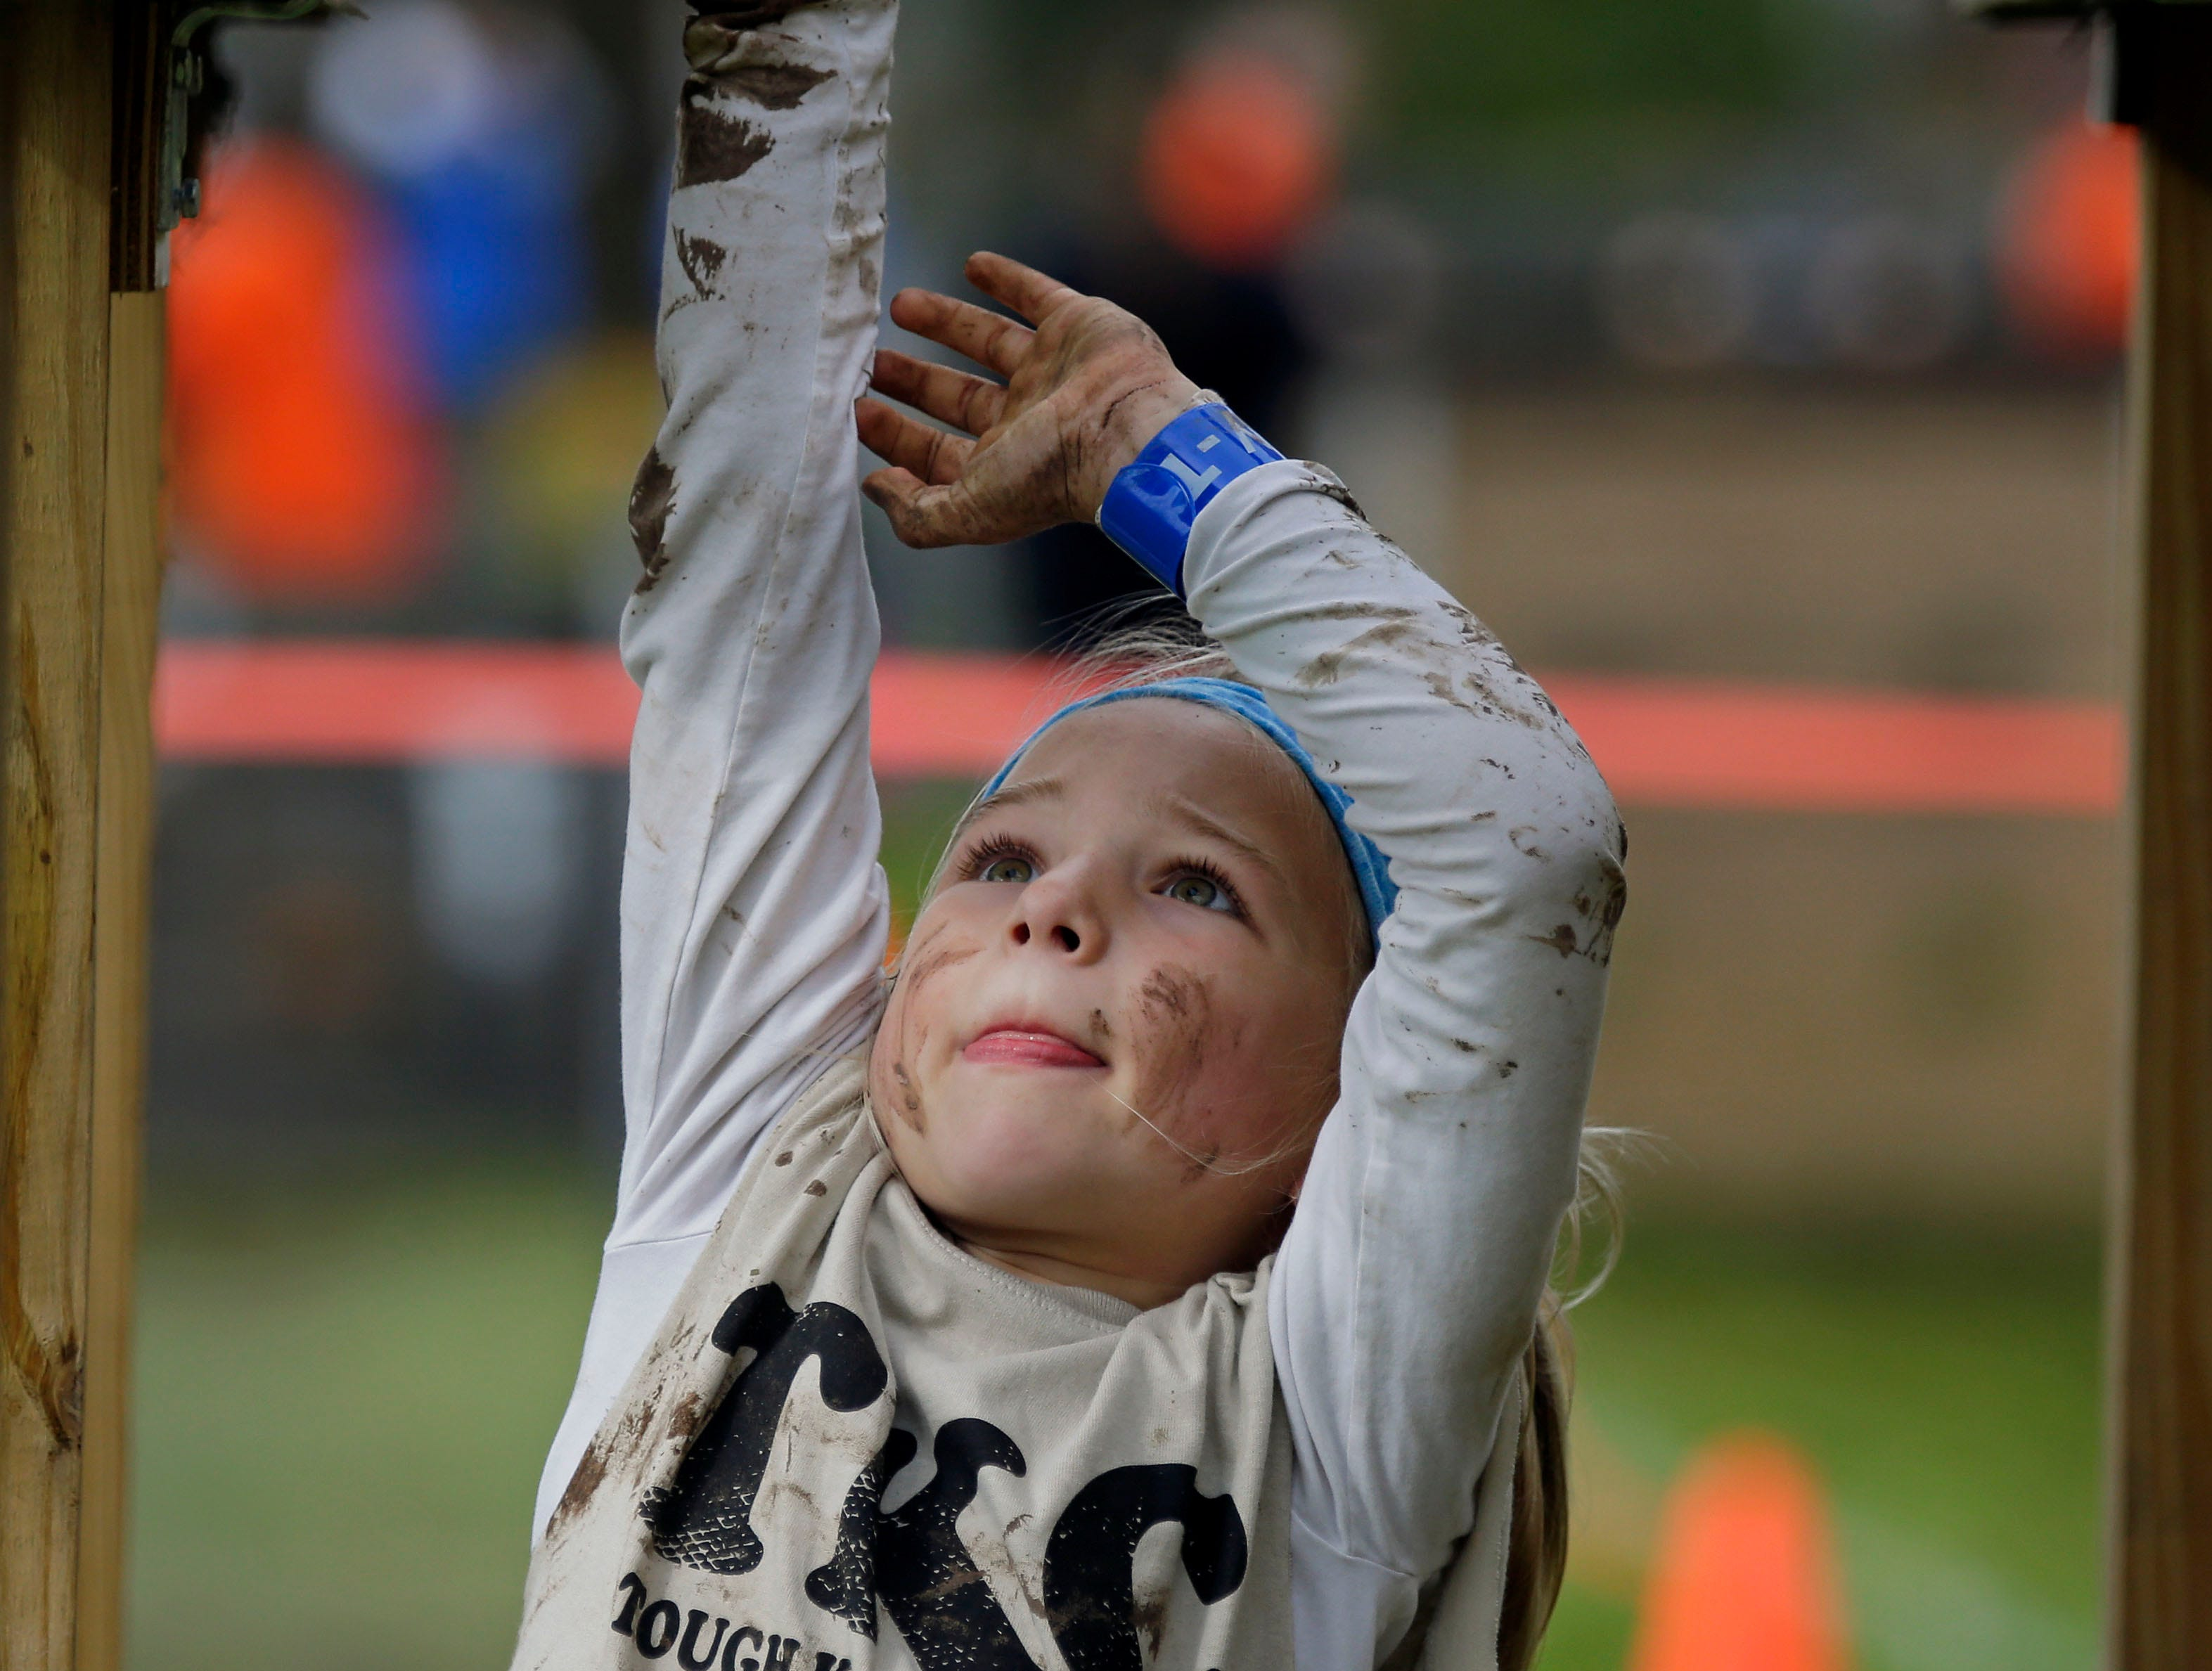 Vanessa Lewis of Greenville concentrates on crossing the monkey bars as the Essity Fox Valley Tough Kid Challenge takes place Saturday, October 6, 2018, at Highlands Elementary School in Appleton, Wis. The event raised funds for Physical Education Departments in Appleton.